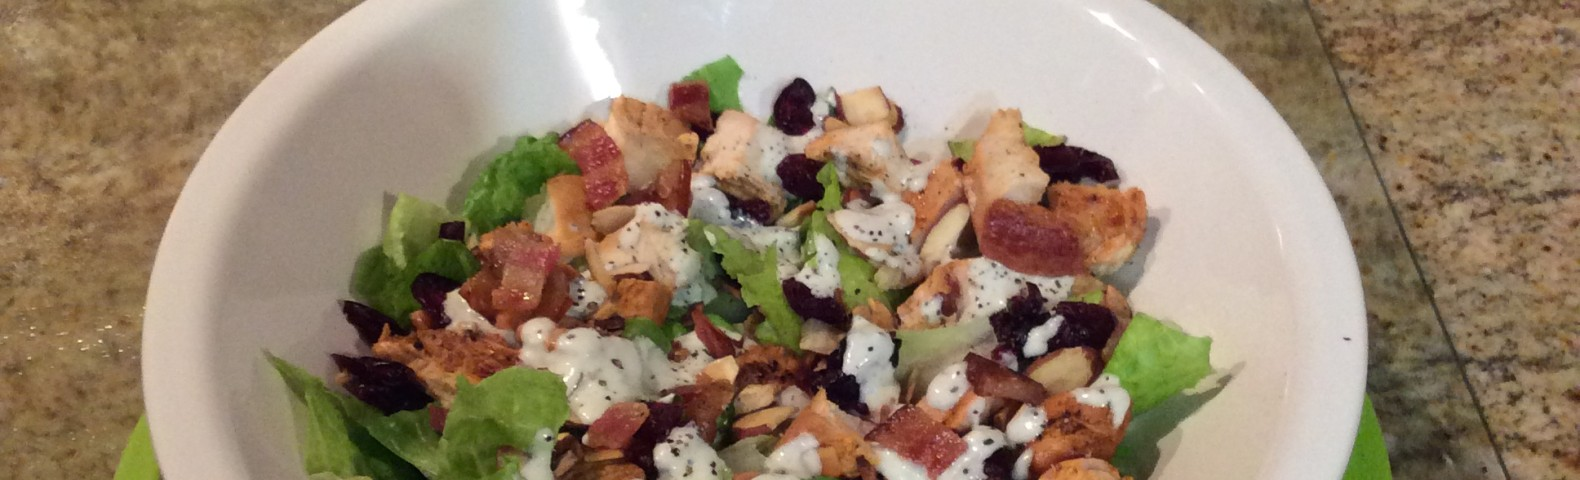 Buffalo Chicken Salad with Bacon & Blue Cheese Dressing